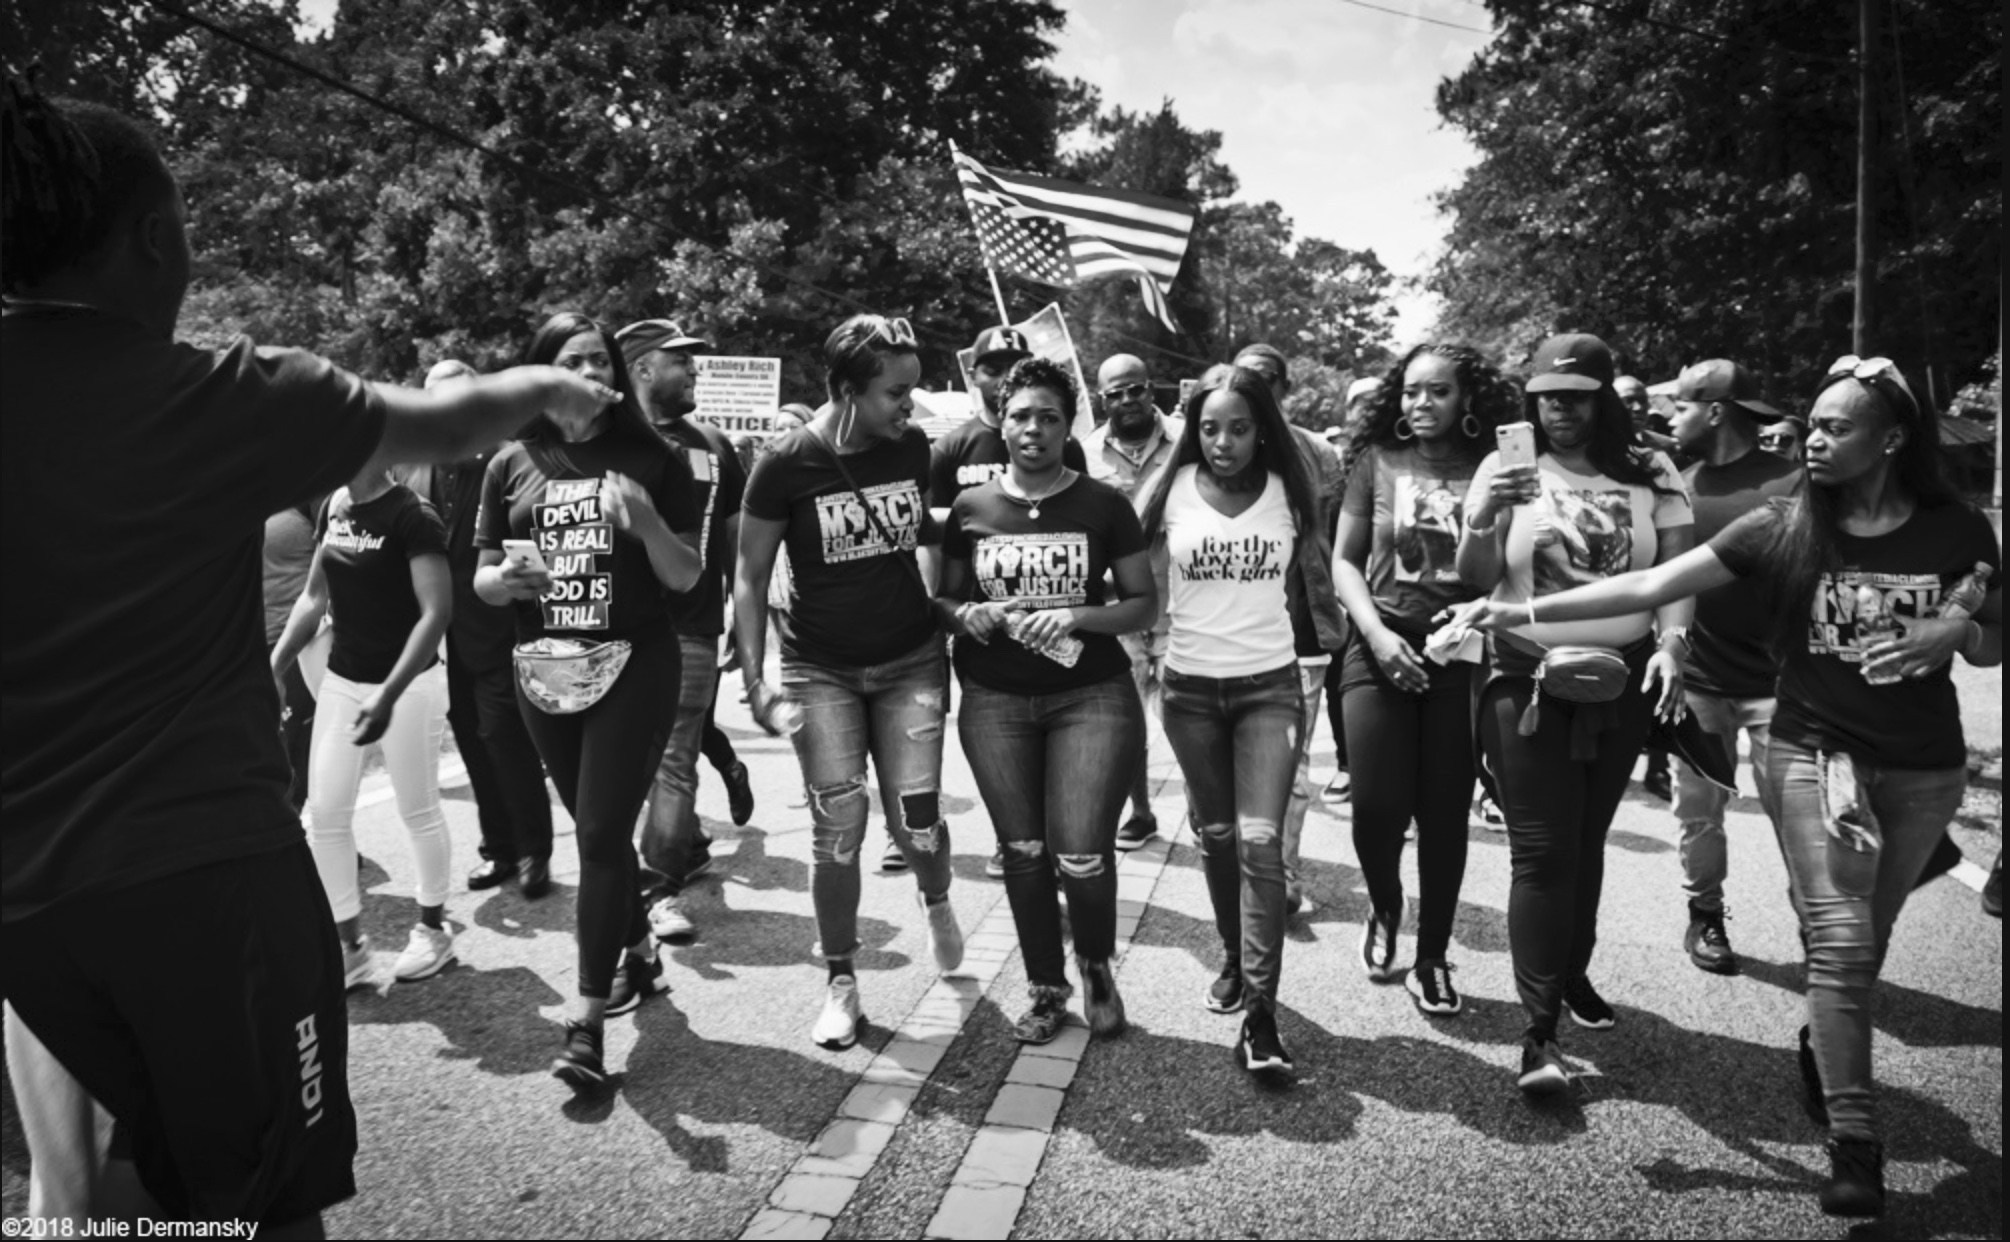 RaceBaitr: Police Violence Against Black Women and Girls is State-Sanctioned Rape Culture - September 10, 2018